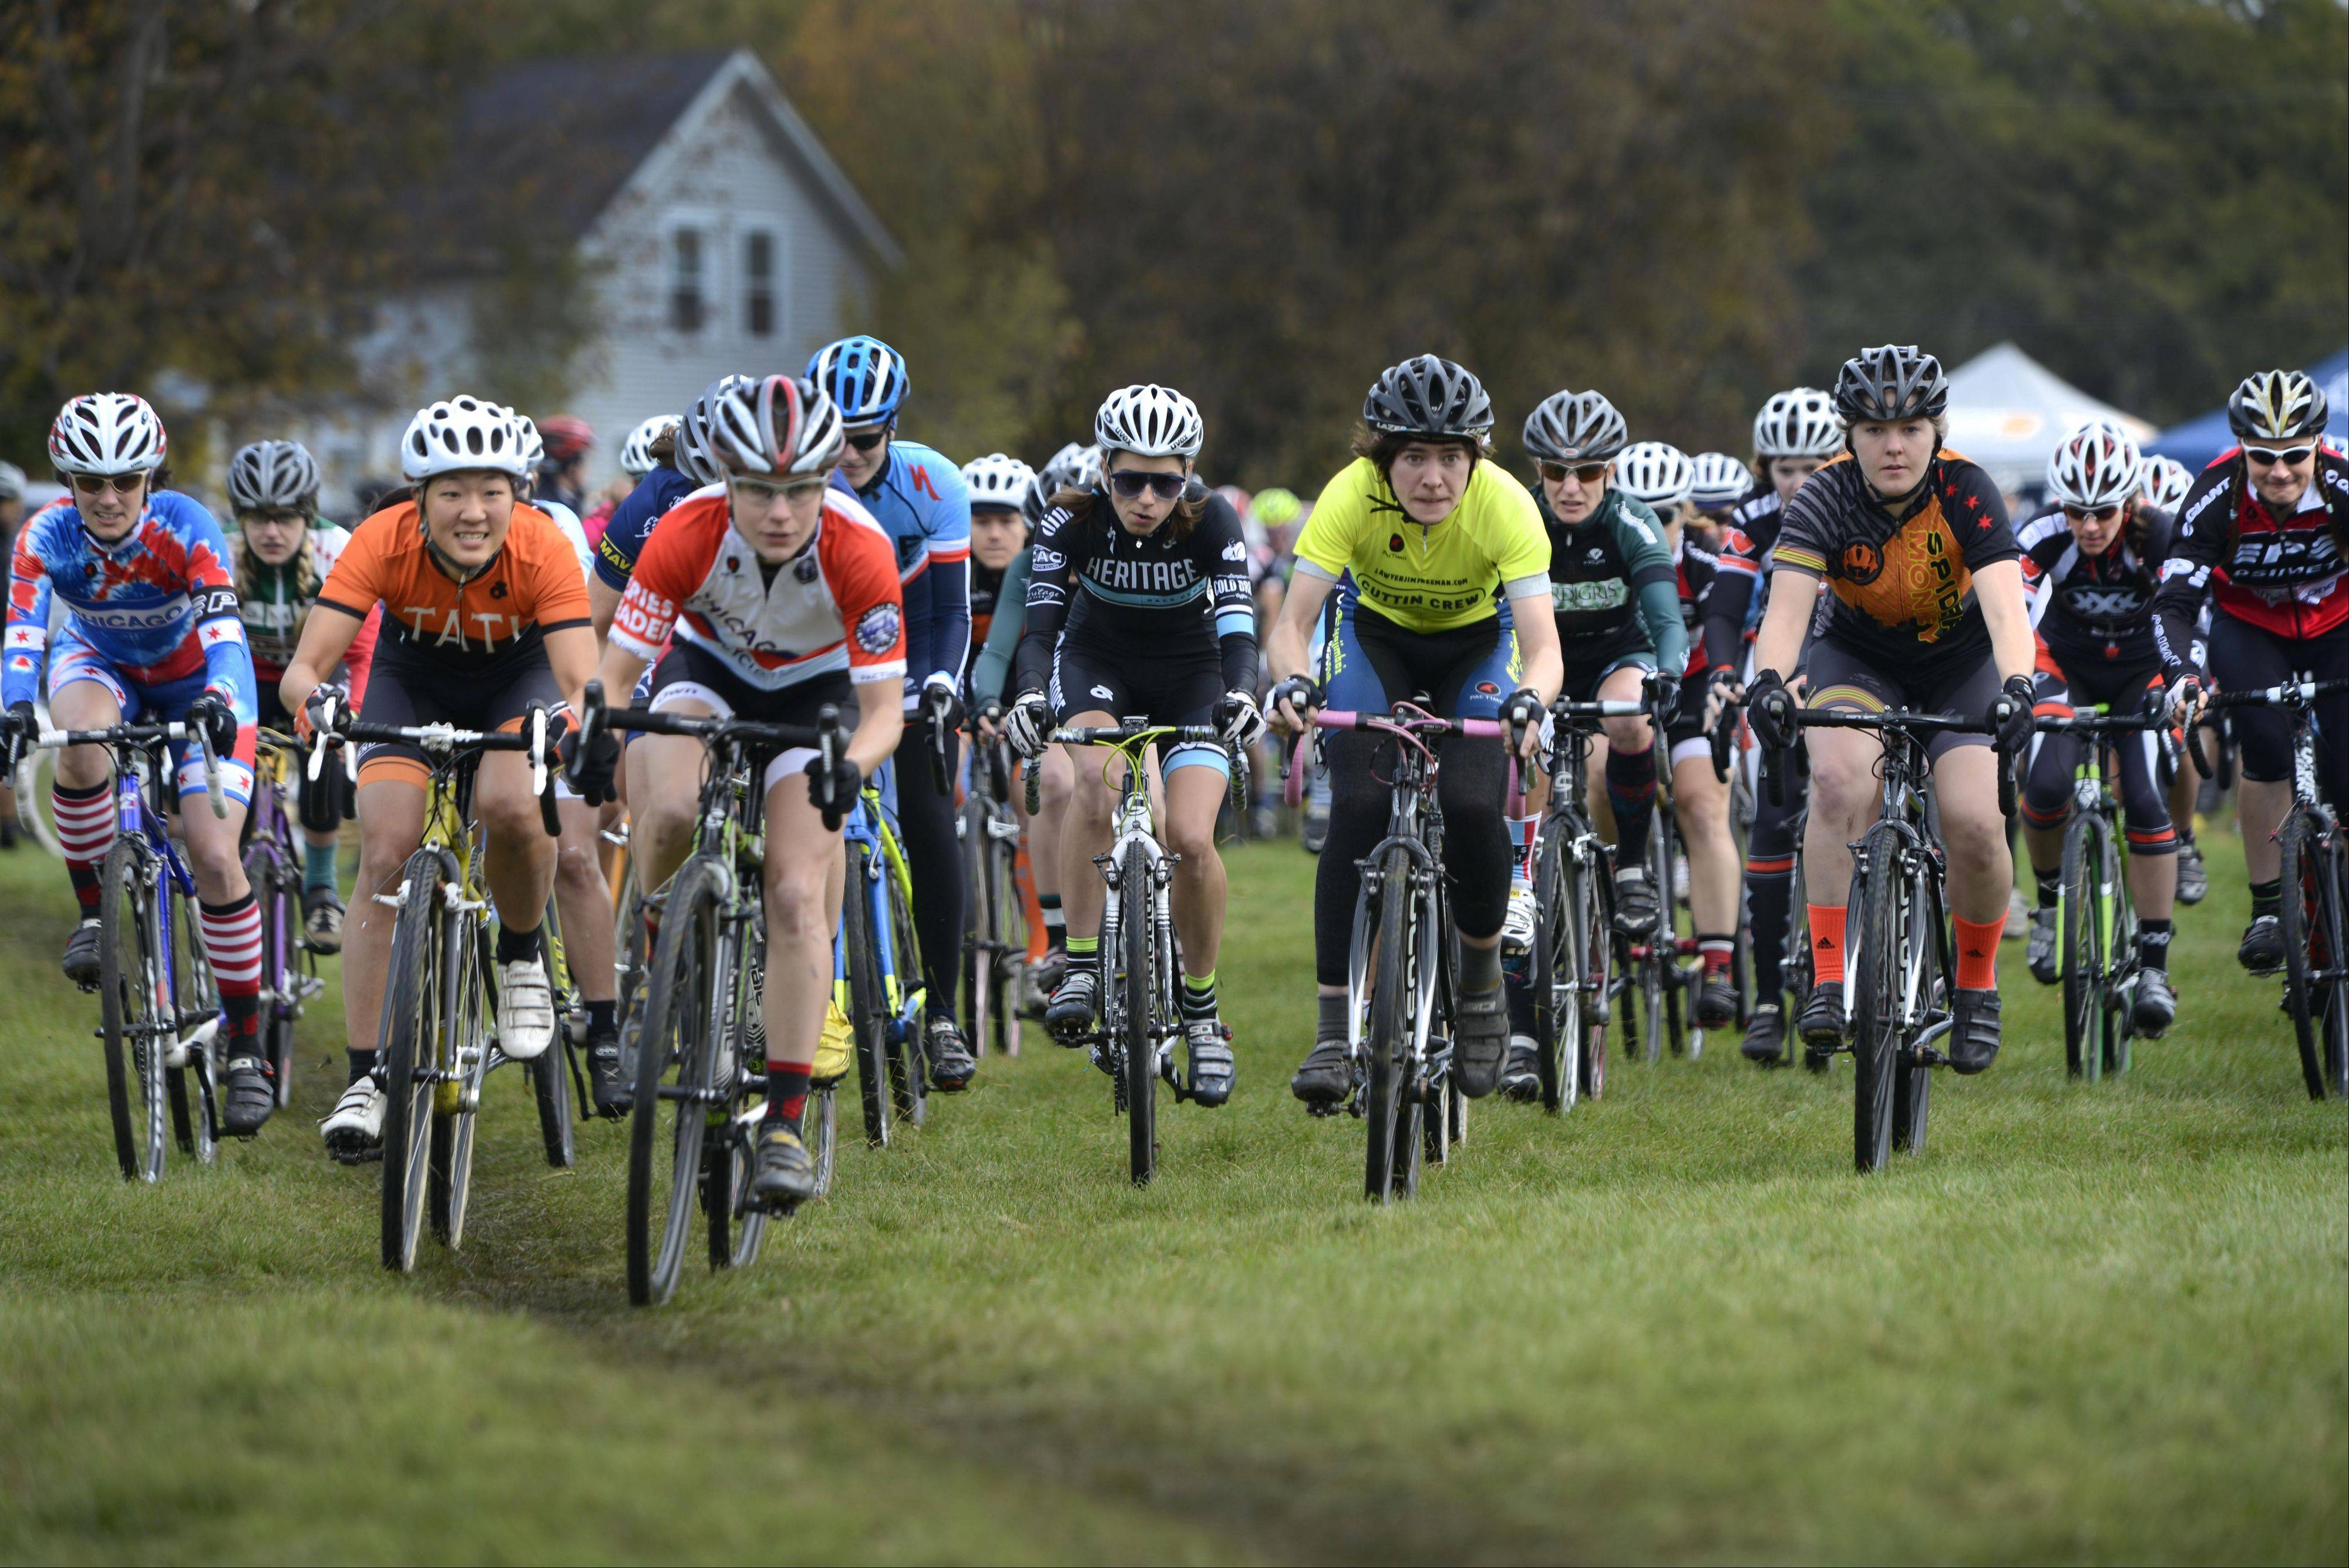 Racers pedal hard for the first corner Sunday during the Chicago Cyclocross Cup bicycle races at Carpenter Park in Carpentersville. More than 600 racers, most from Illinois, competed. There was also a beer garden, food, live entertainment and children�s activities.